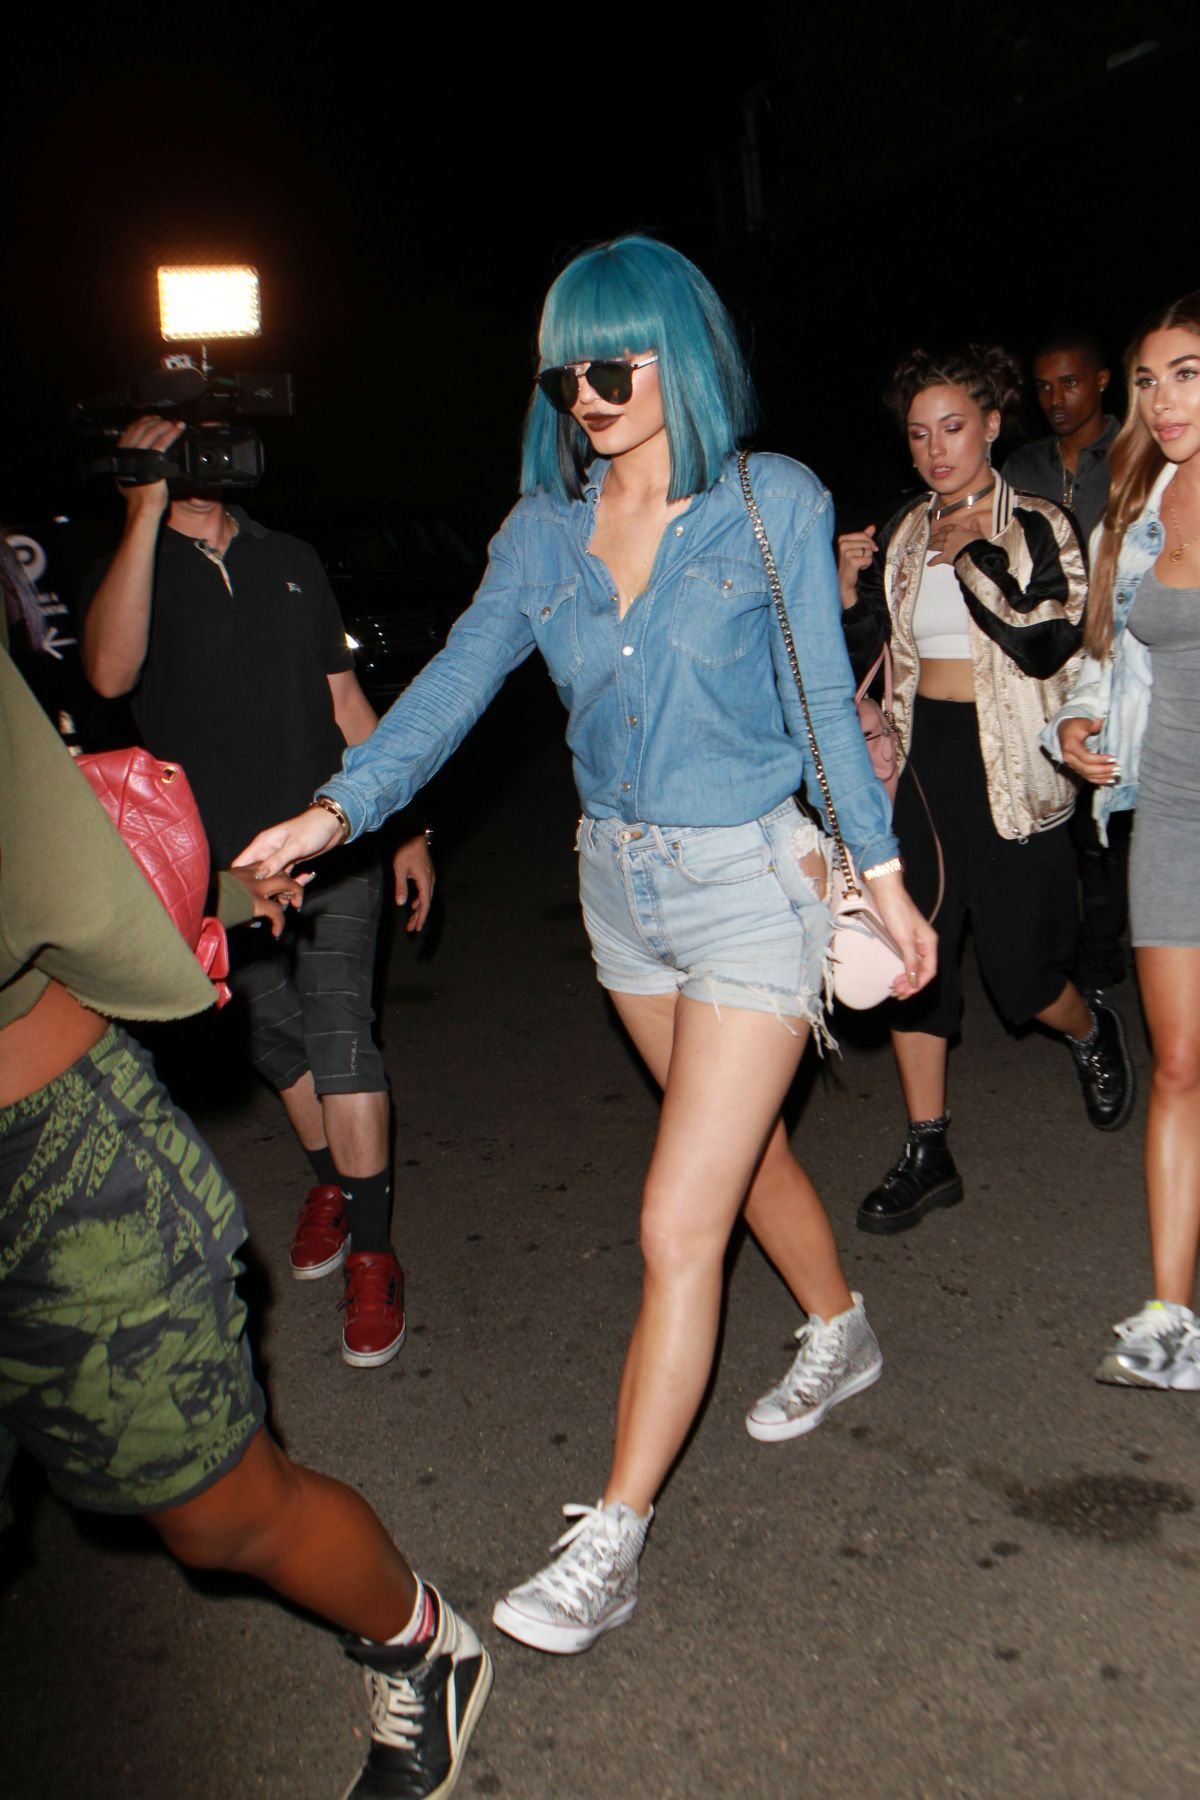 a3a76e8374f23a KYLIE JENNER Night Out in Hollywood 08/29/2015 - HawtCelebs